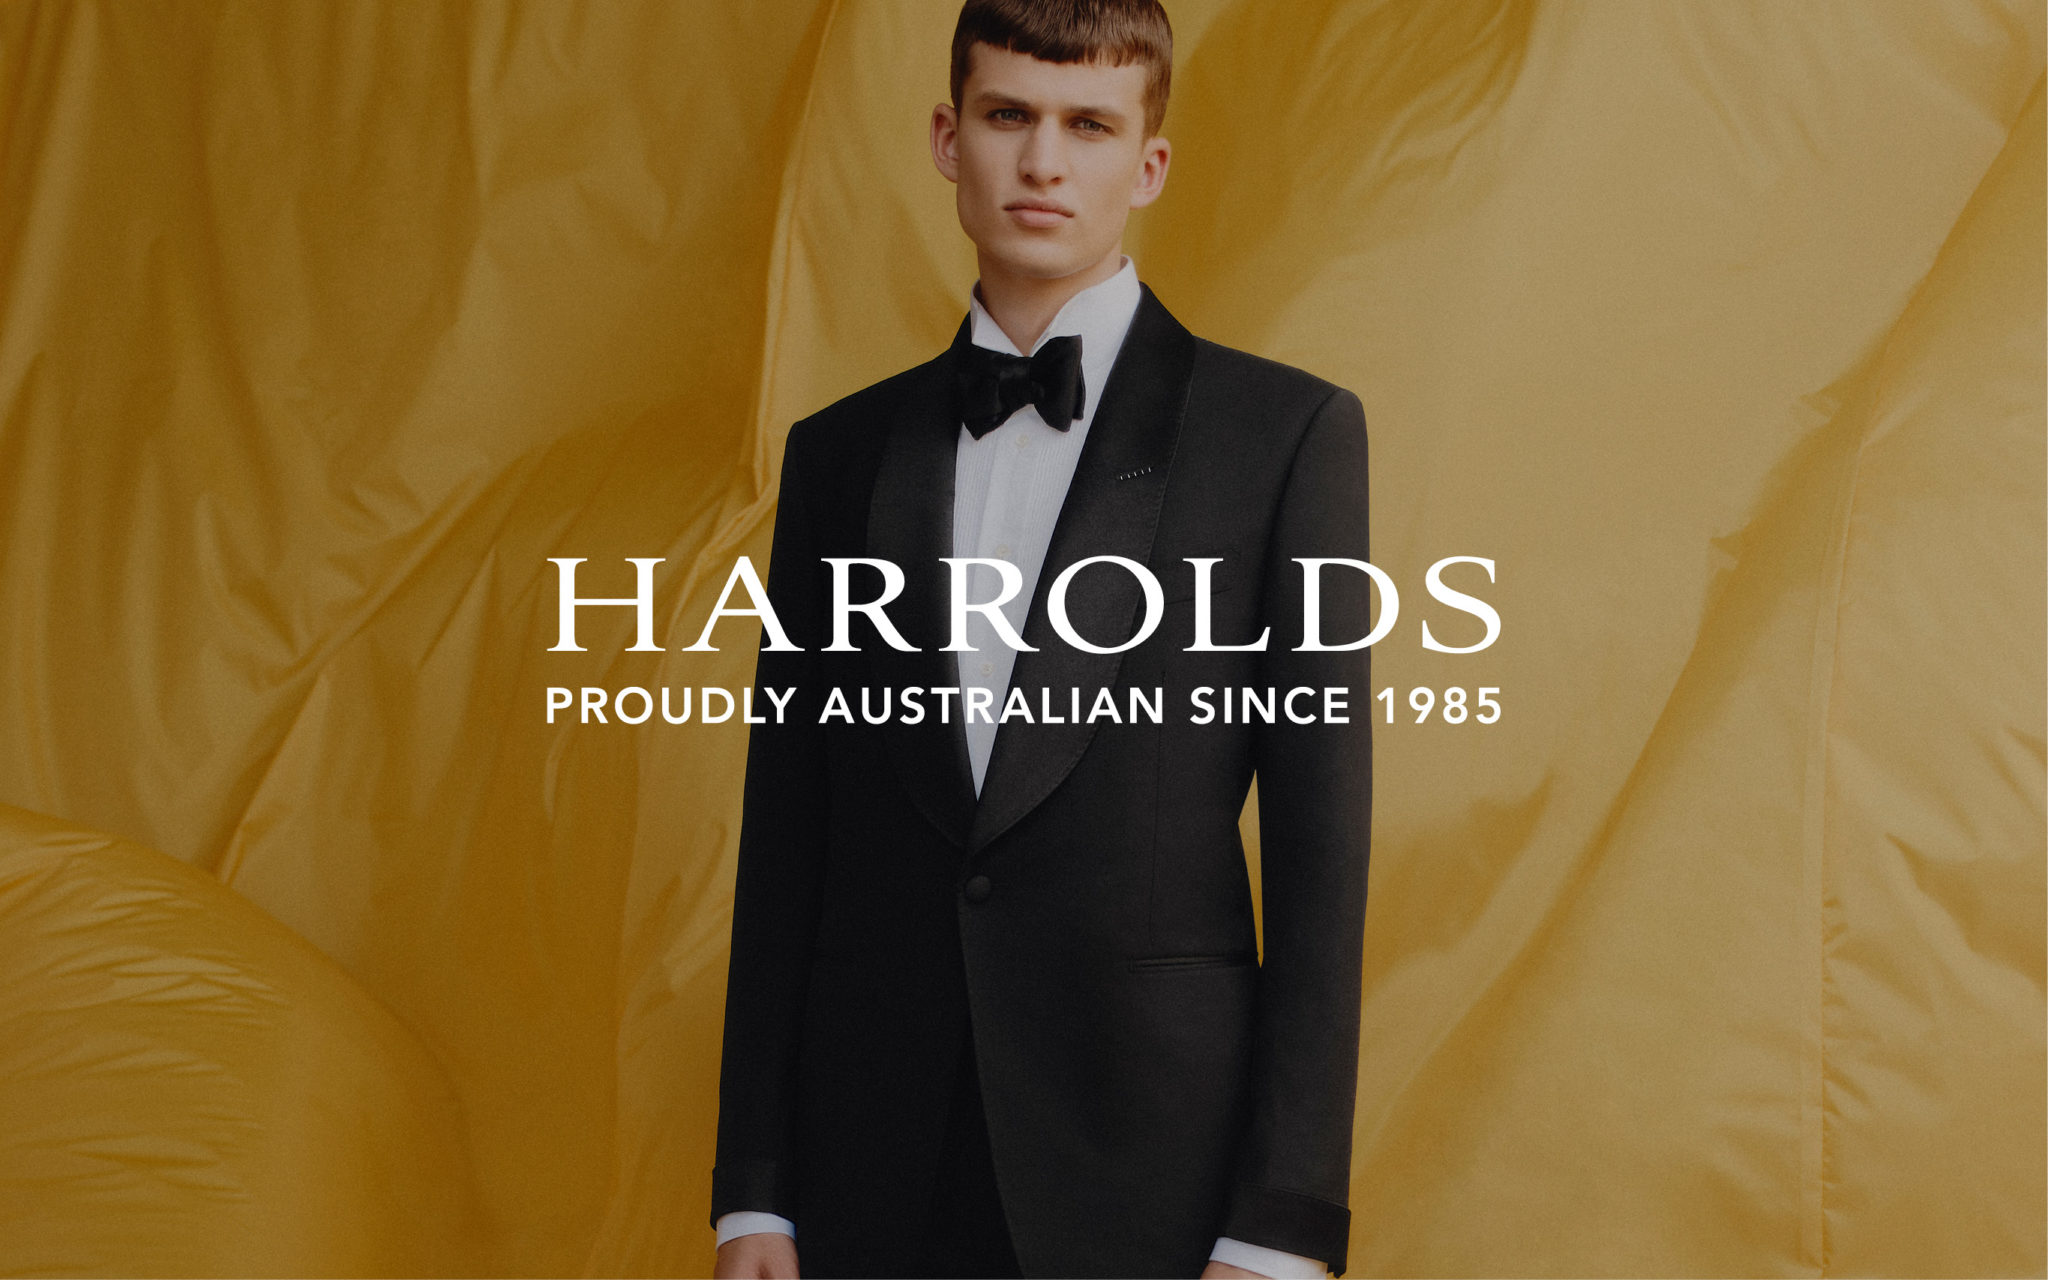 Harrolds – Proudly Australian for 35 years